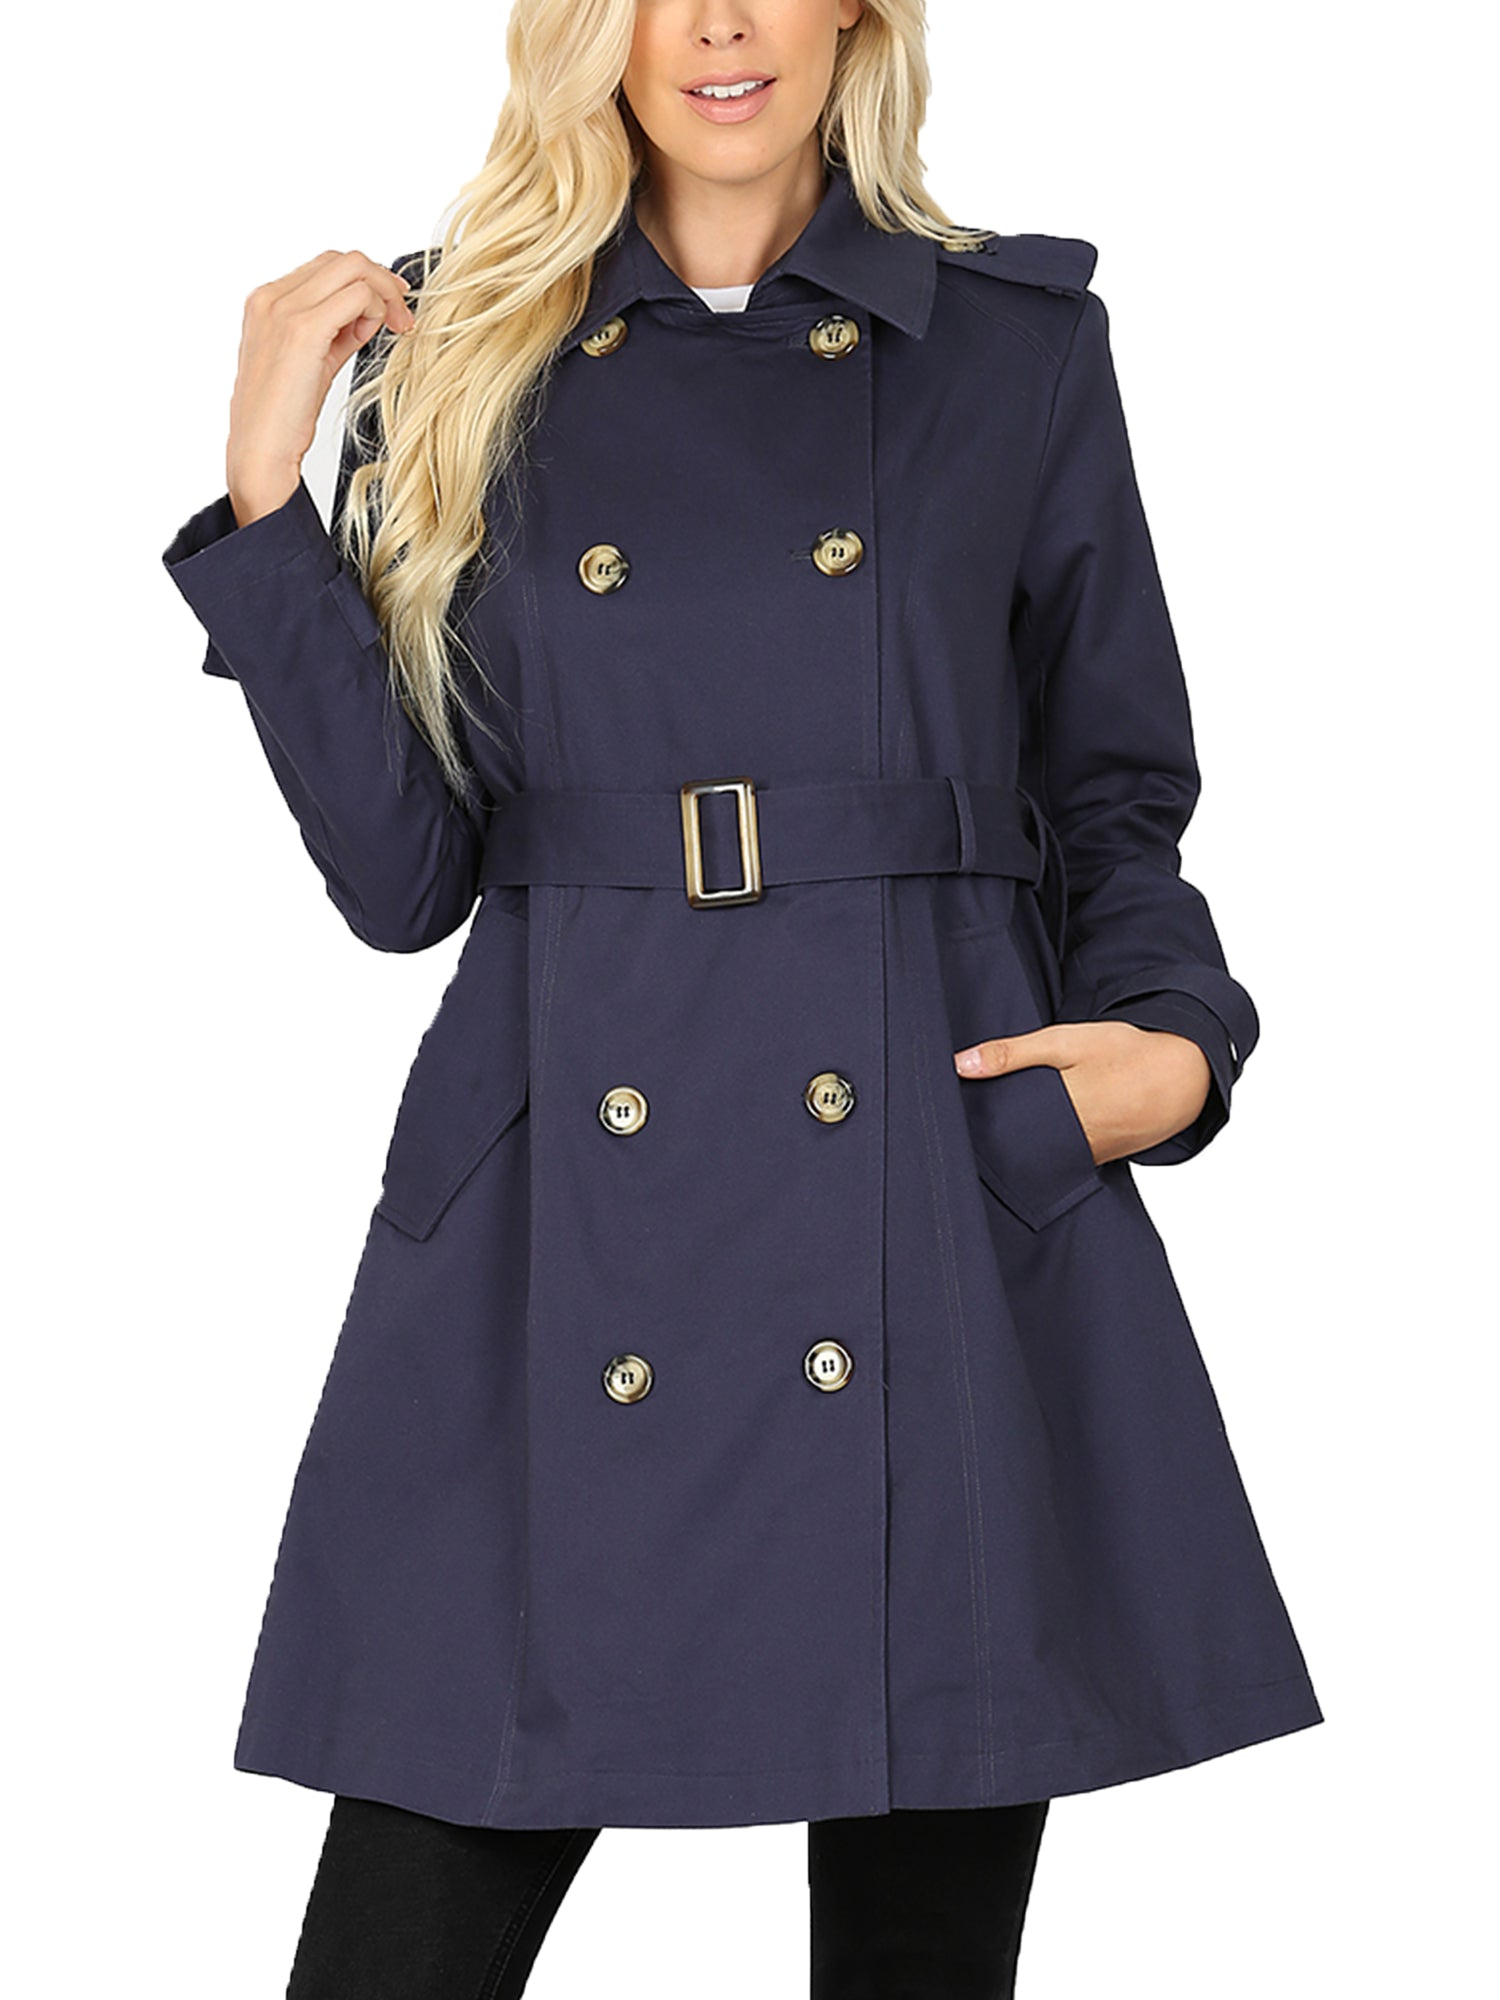 Womens  Trench Coat Jacket - FLJ CORPORATIONS